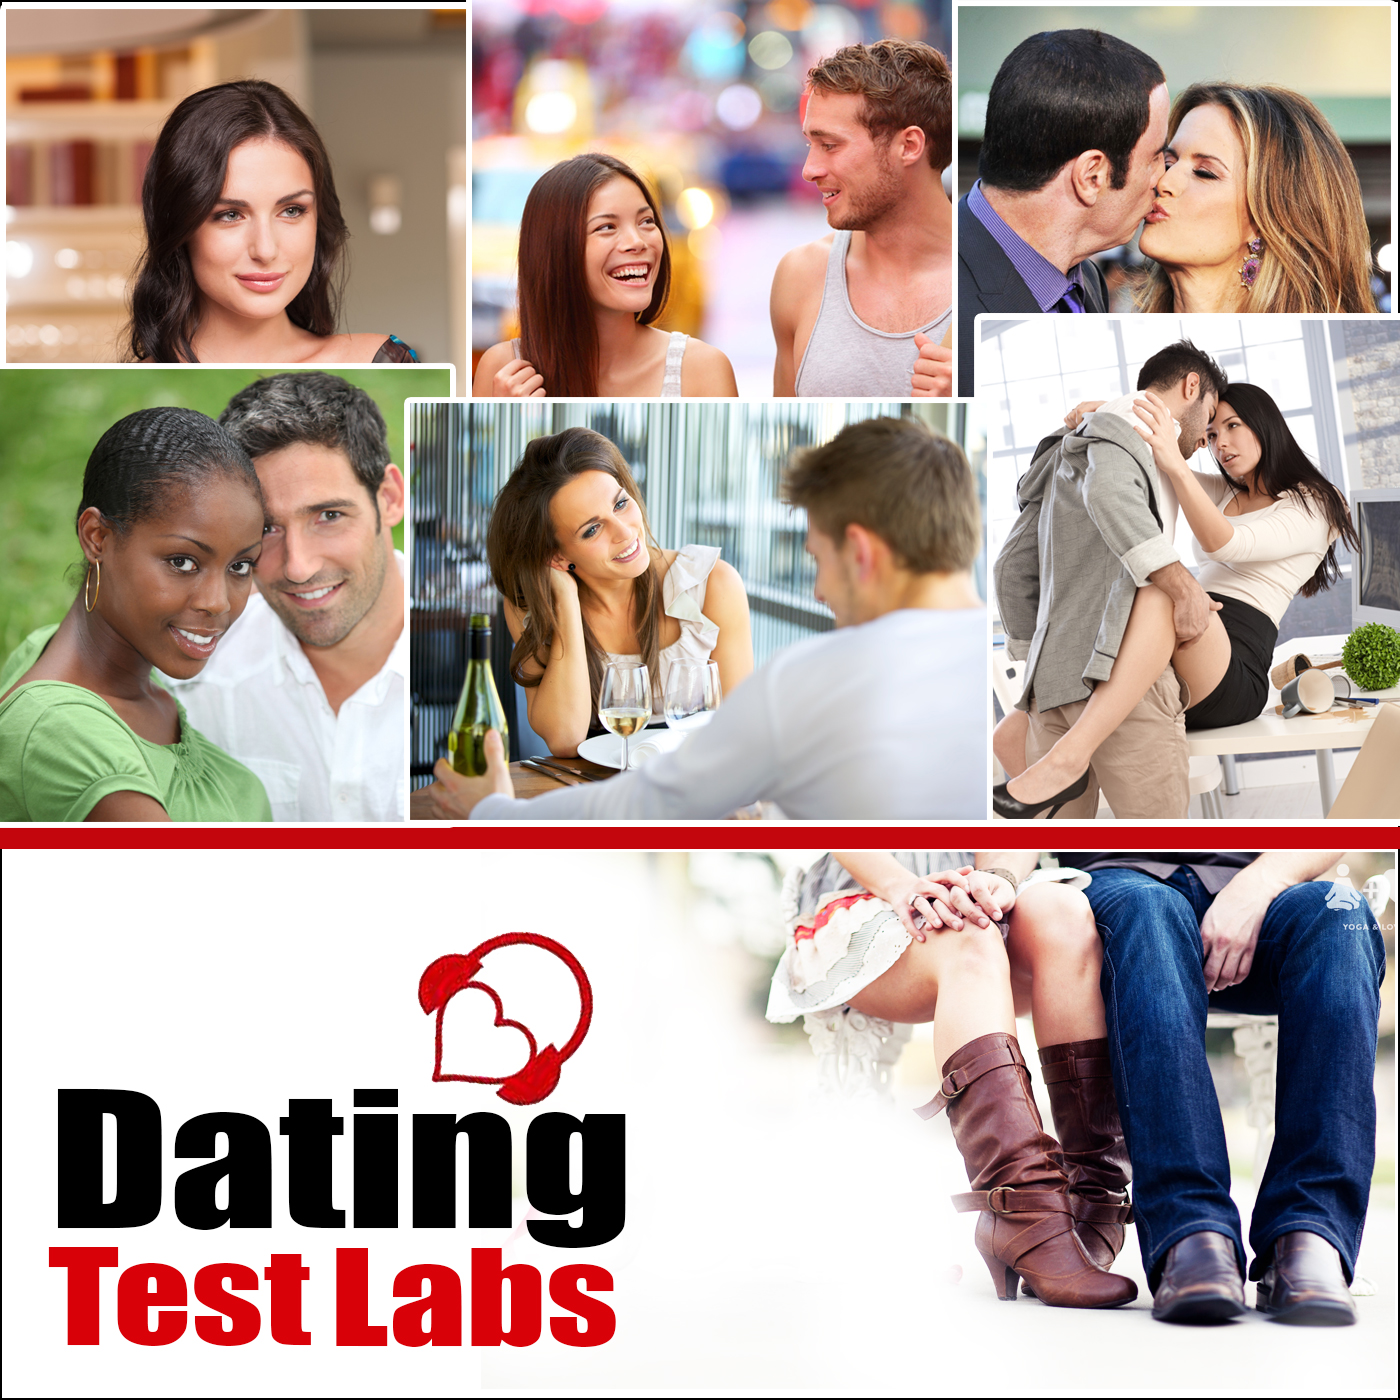 Tuesday Dating Secrets from Dating Test Labs